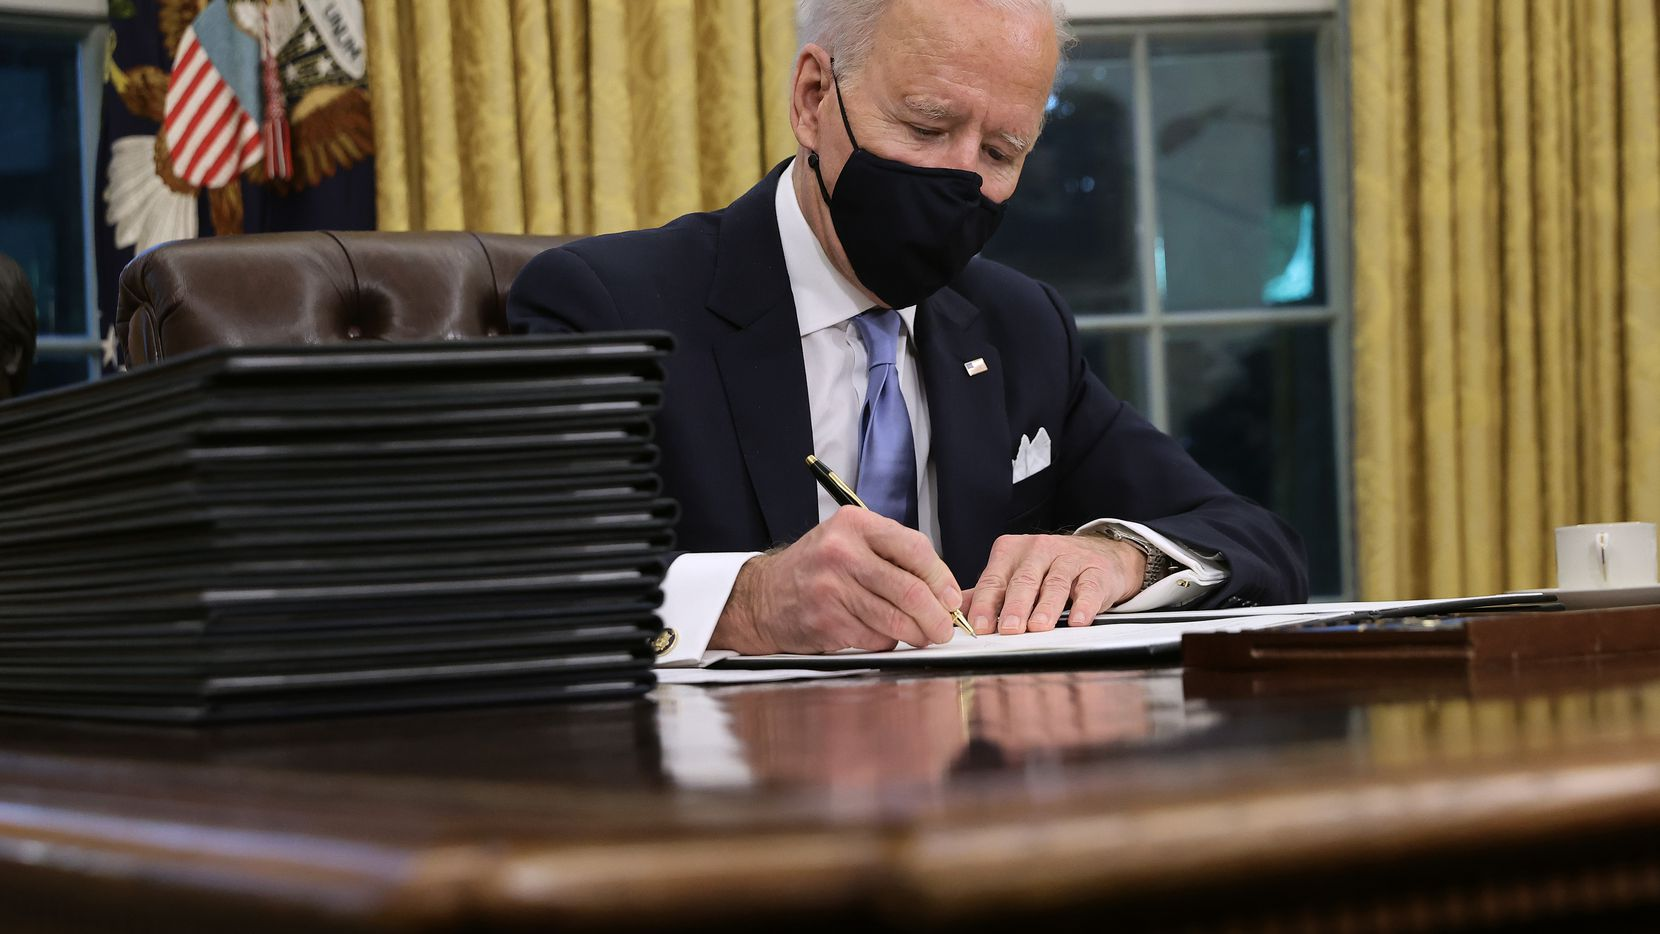 President Joe Biden signs executive orders at the Resolute Desk in the Oval Office just hours after his inauguration on January 20, 2021.